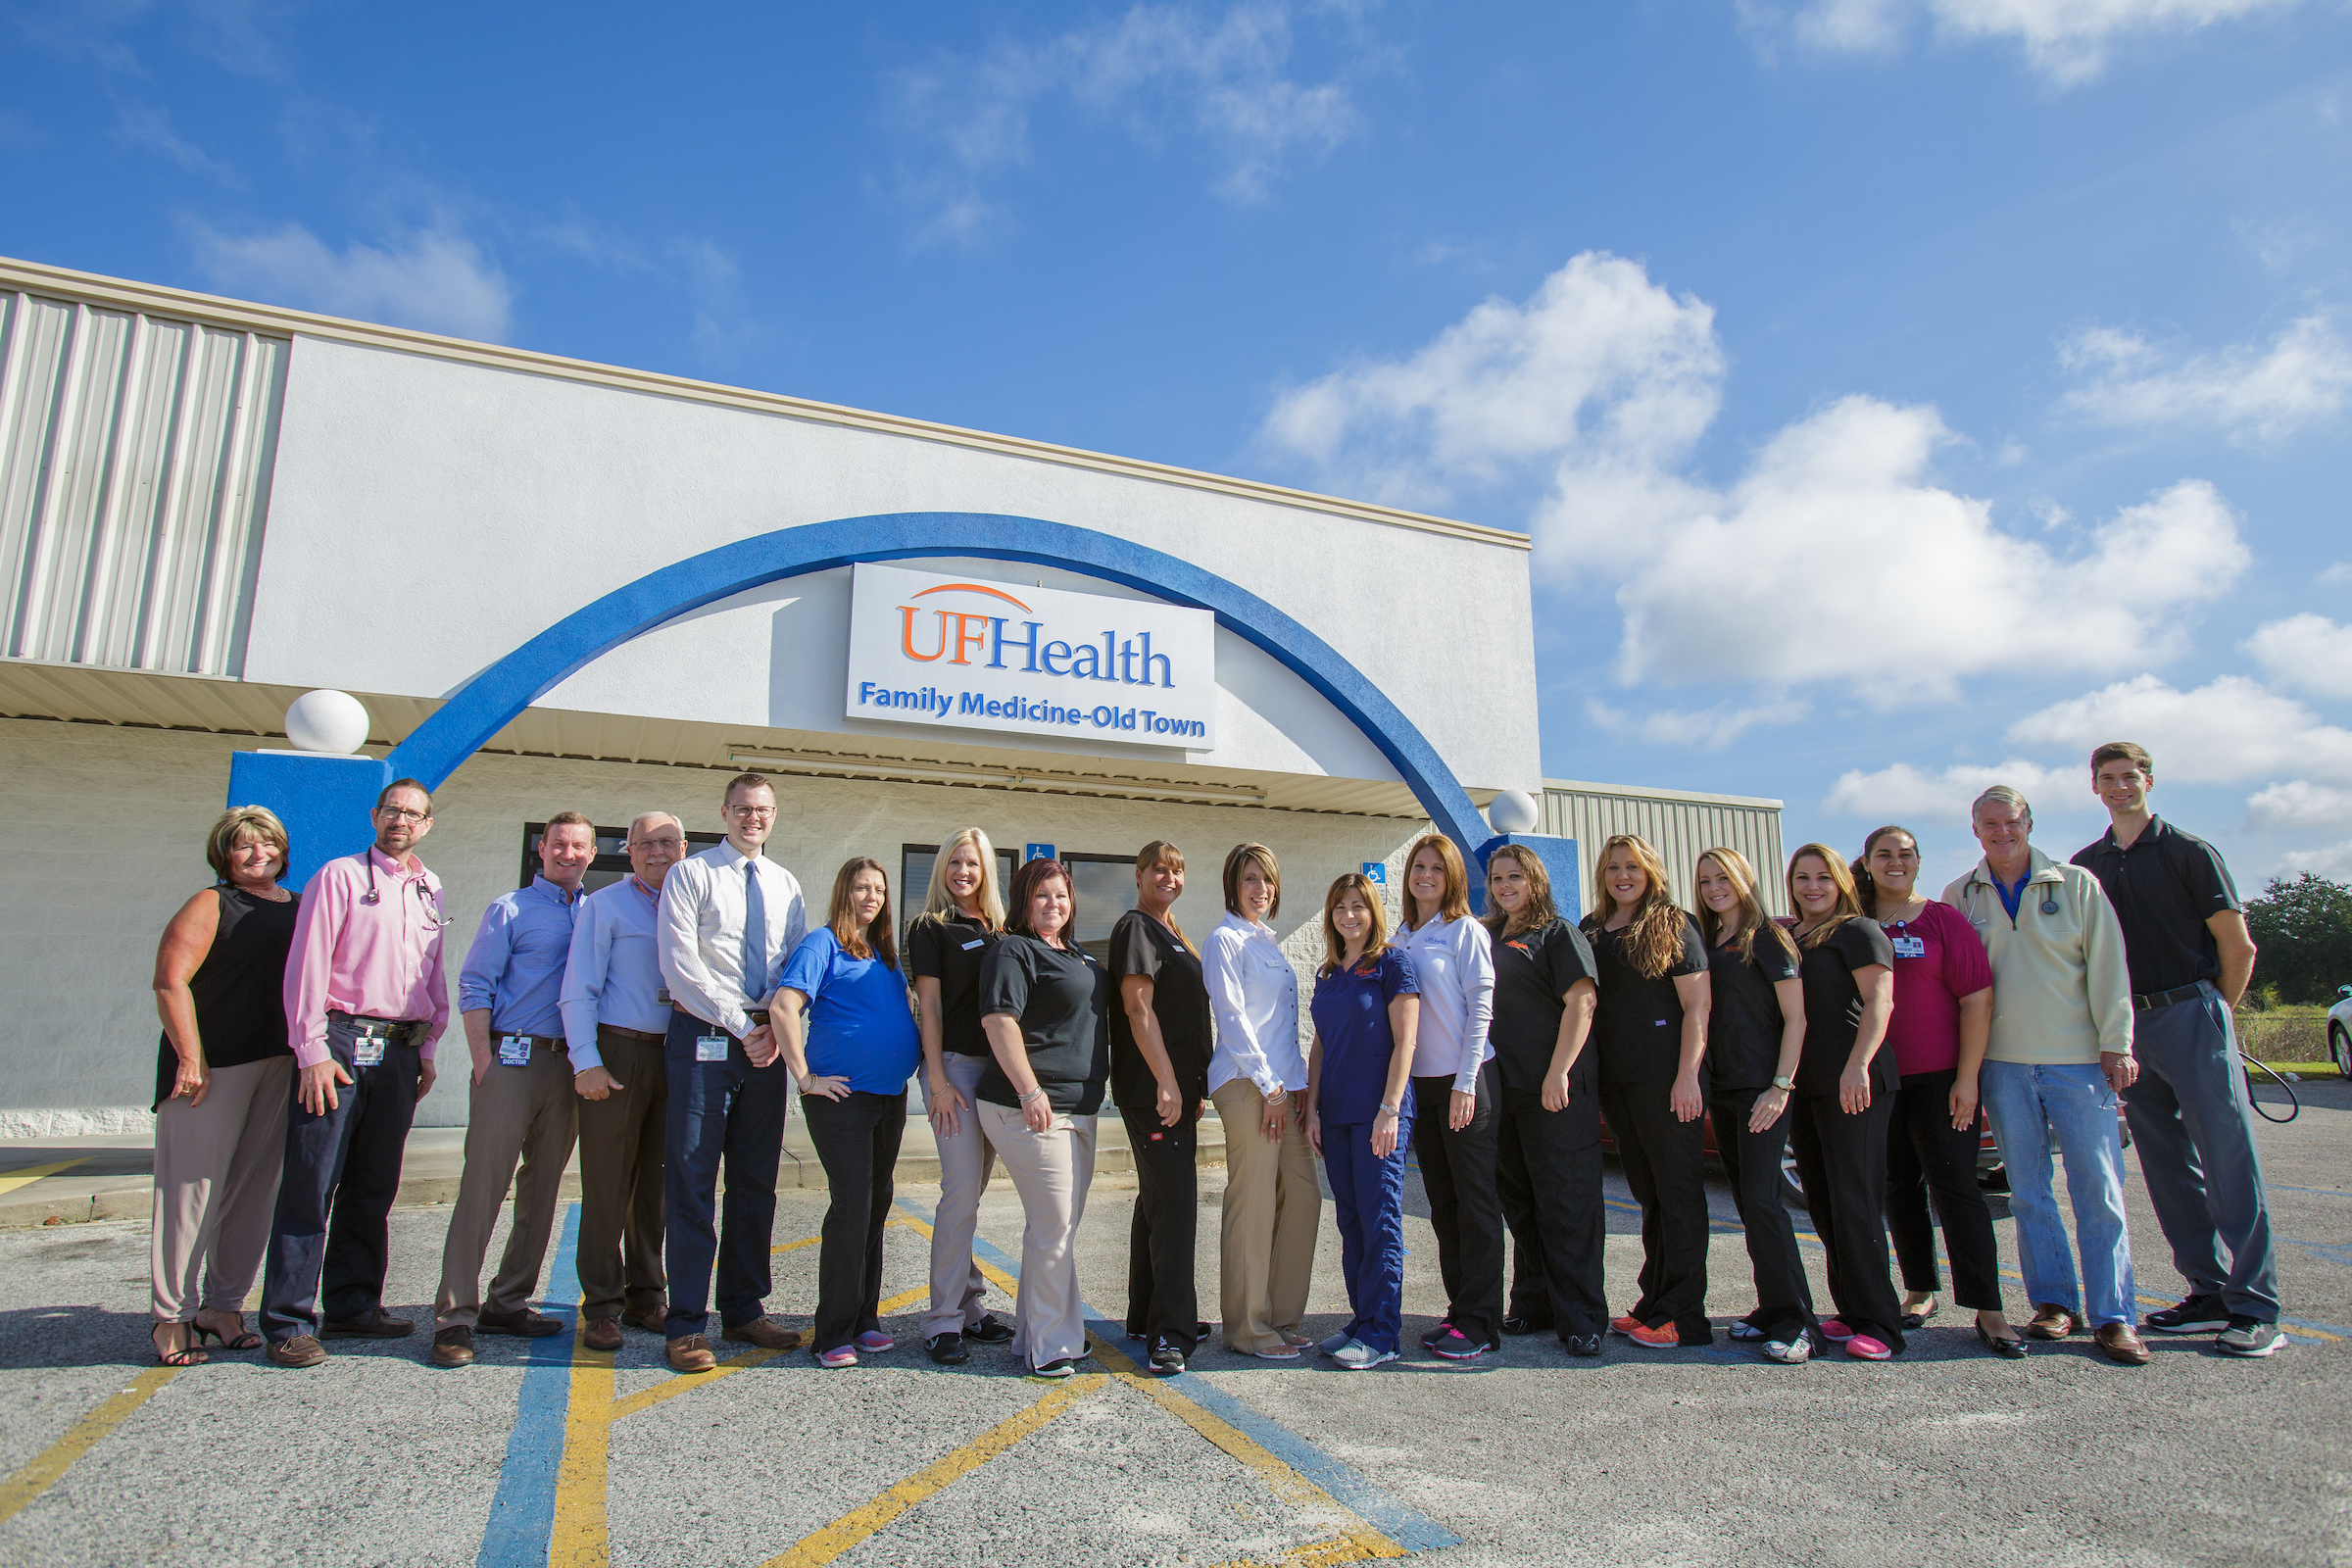 UF Health Family Medicine - Old Town